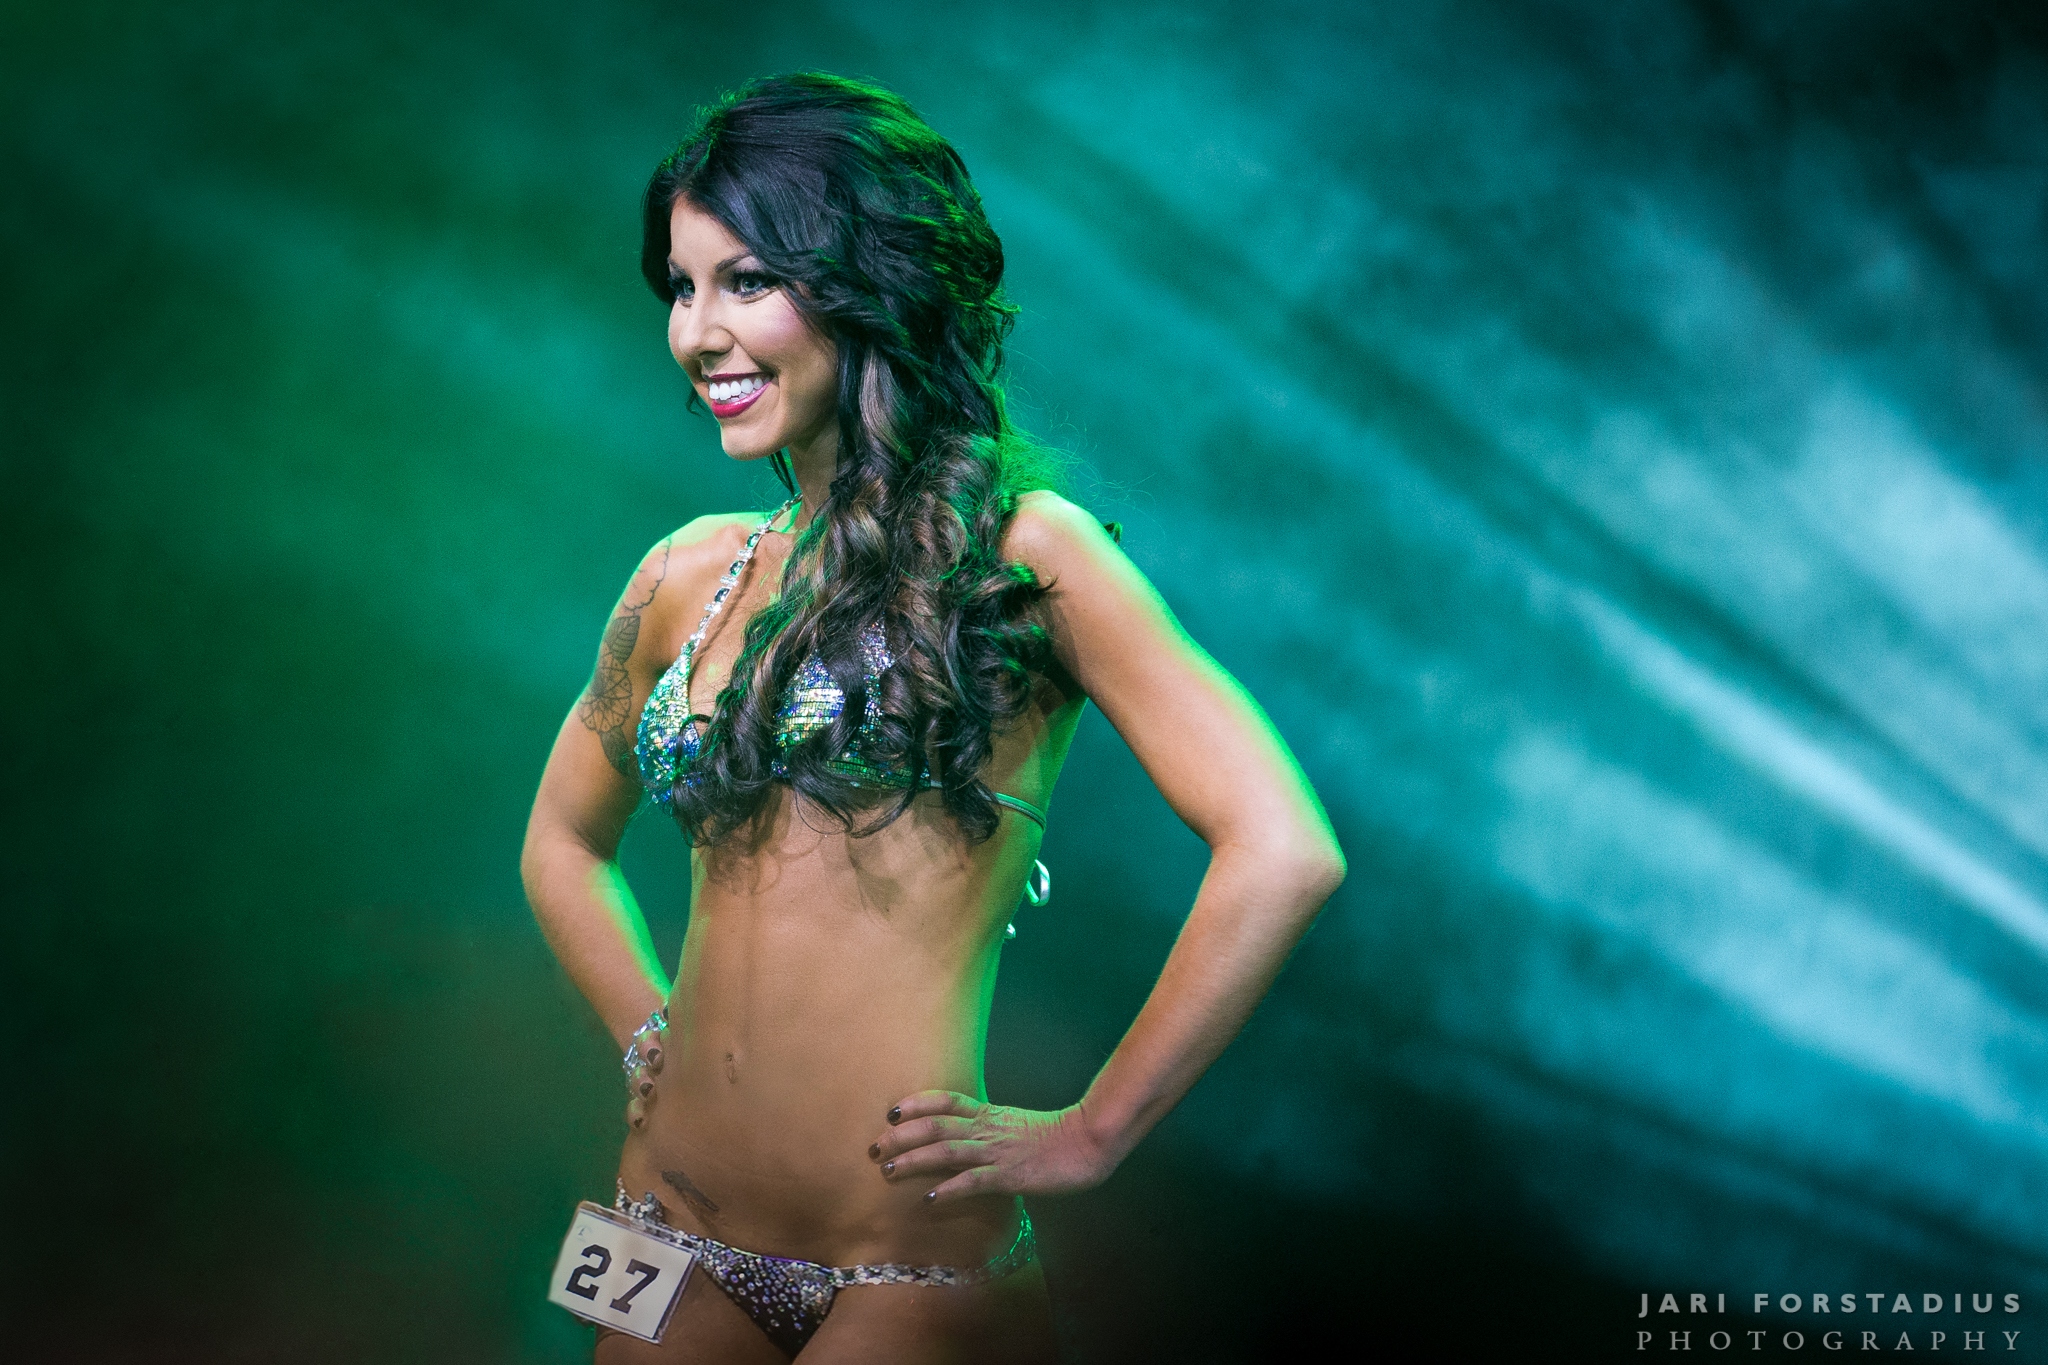 About Photographying Stage Performances – Helsinki Fitness 2016